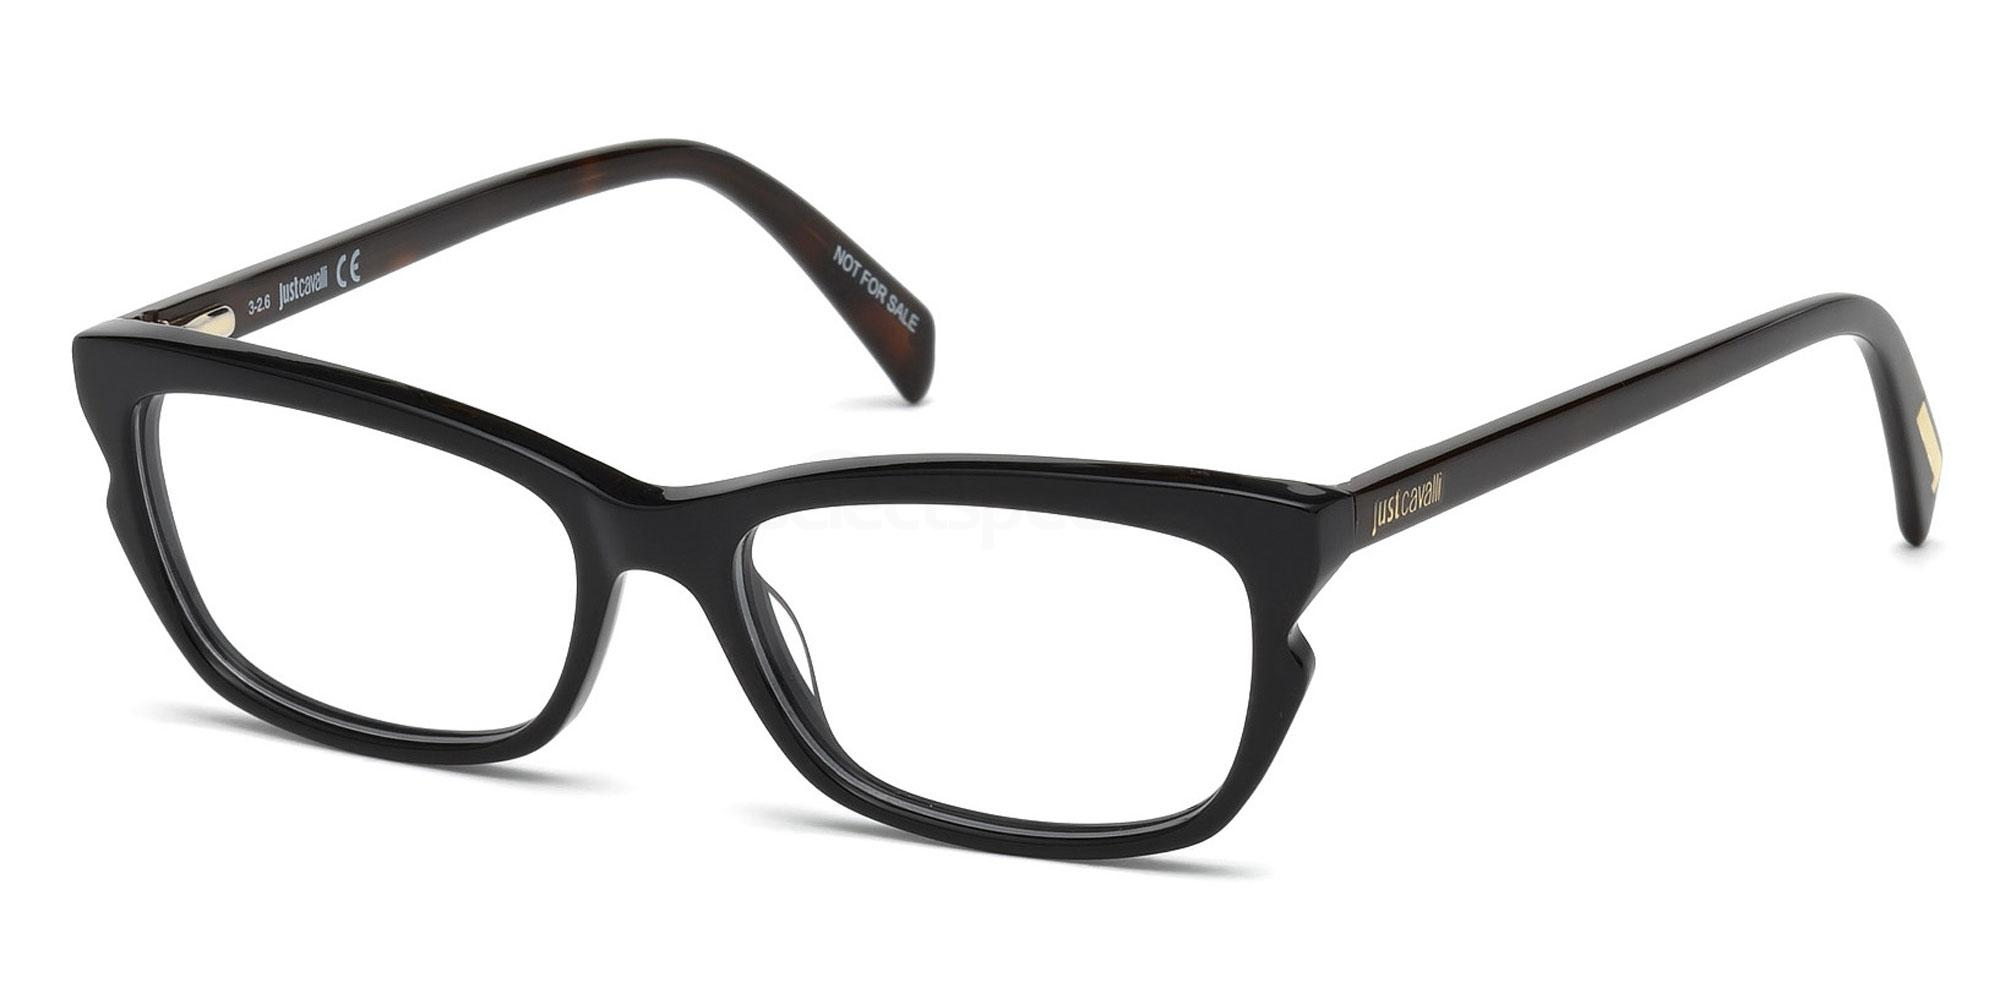 001 JC0797 Glasses, Just Cavalli